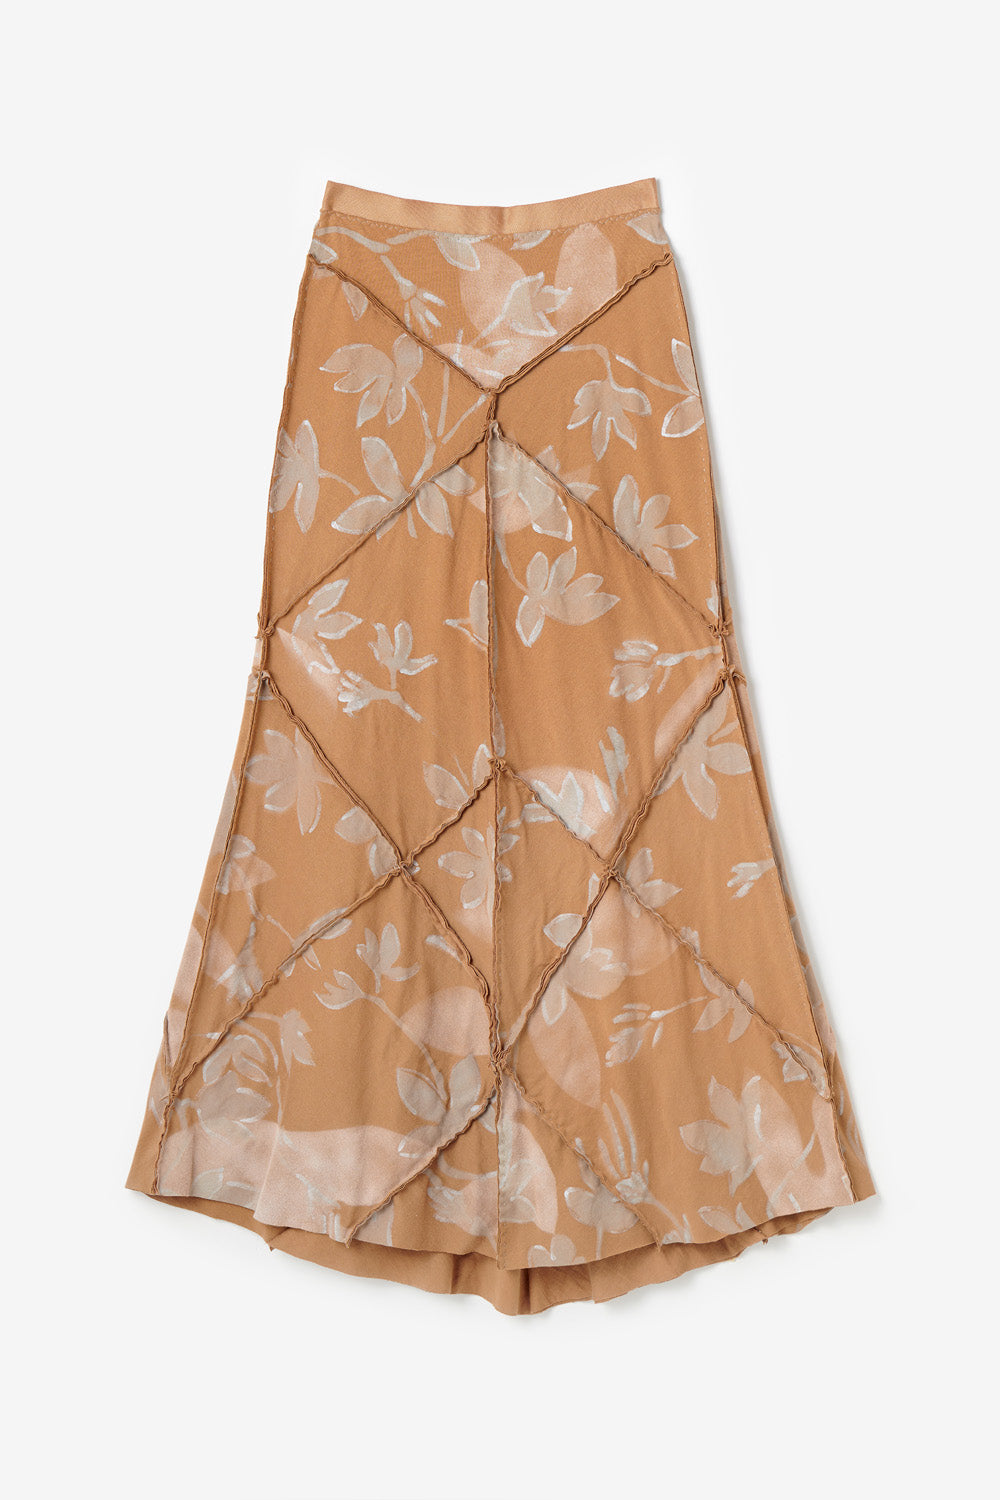 Alabama Chanin Fernando Skirt Patchwork Long Skirt with Hand-Painted Floral Pattern in Camel